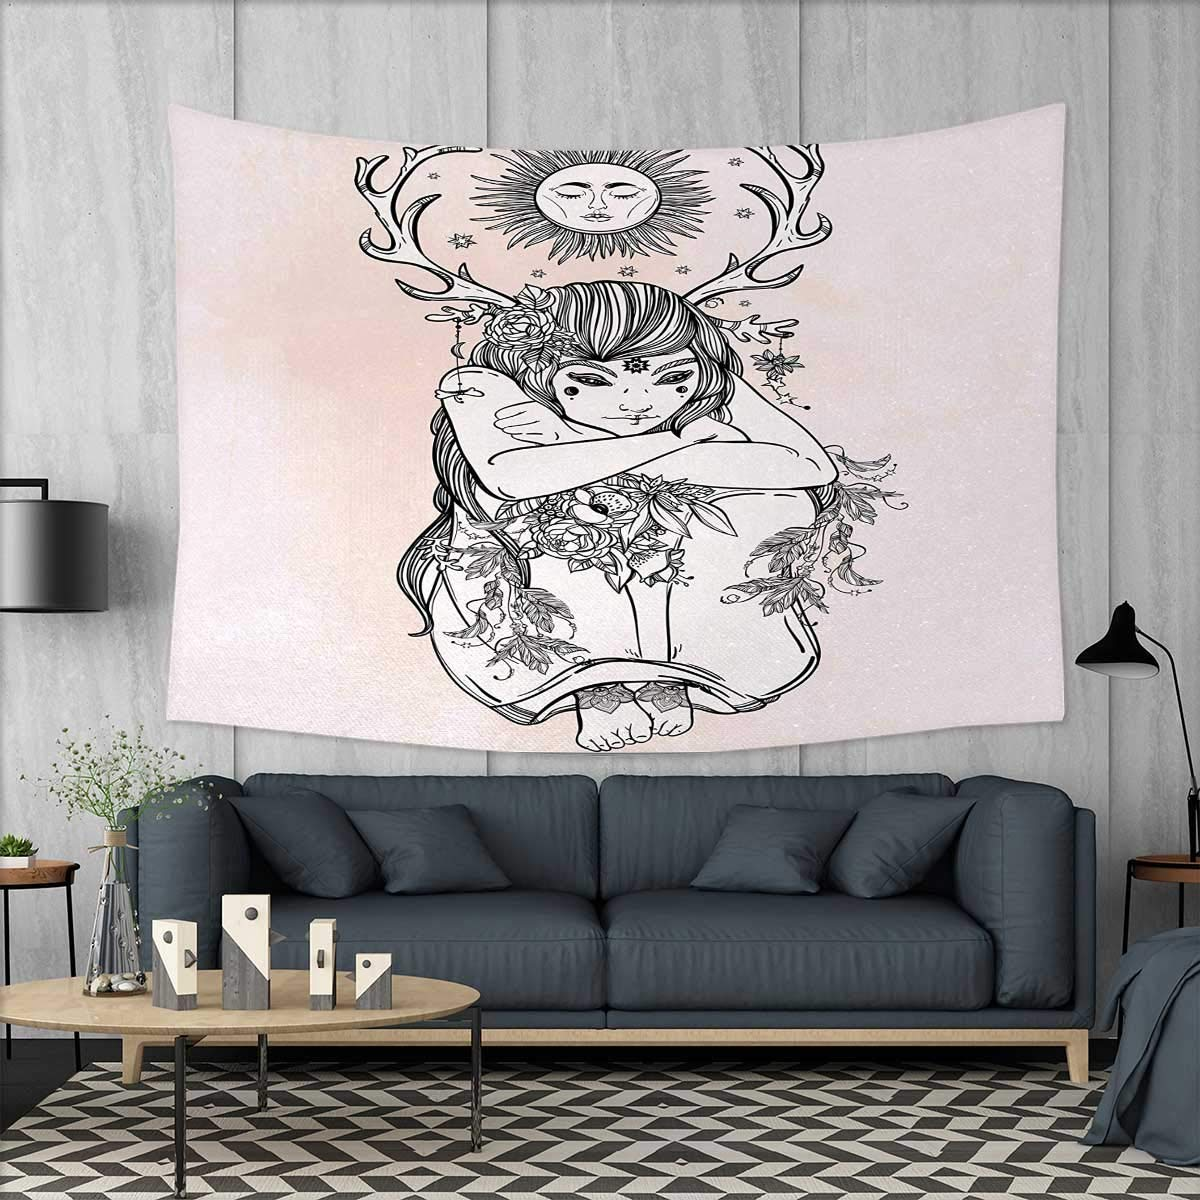 Anniutwo Occult Dorm Decor Image of Naked Girl Under The Sun Sublime Fairy of Nature Cosmos Nymph Deity Art Tapestry Table Cover Bedspread Beach Towel W71 x L60 (inch) Pink Black